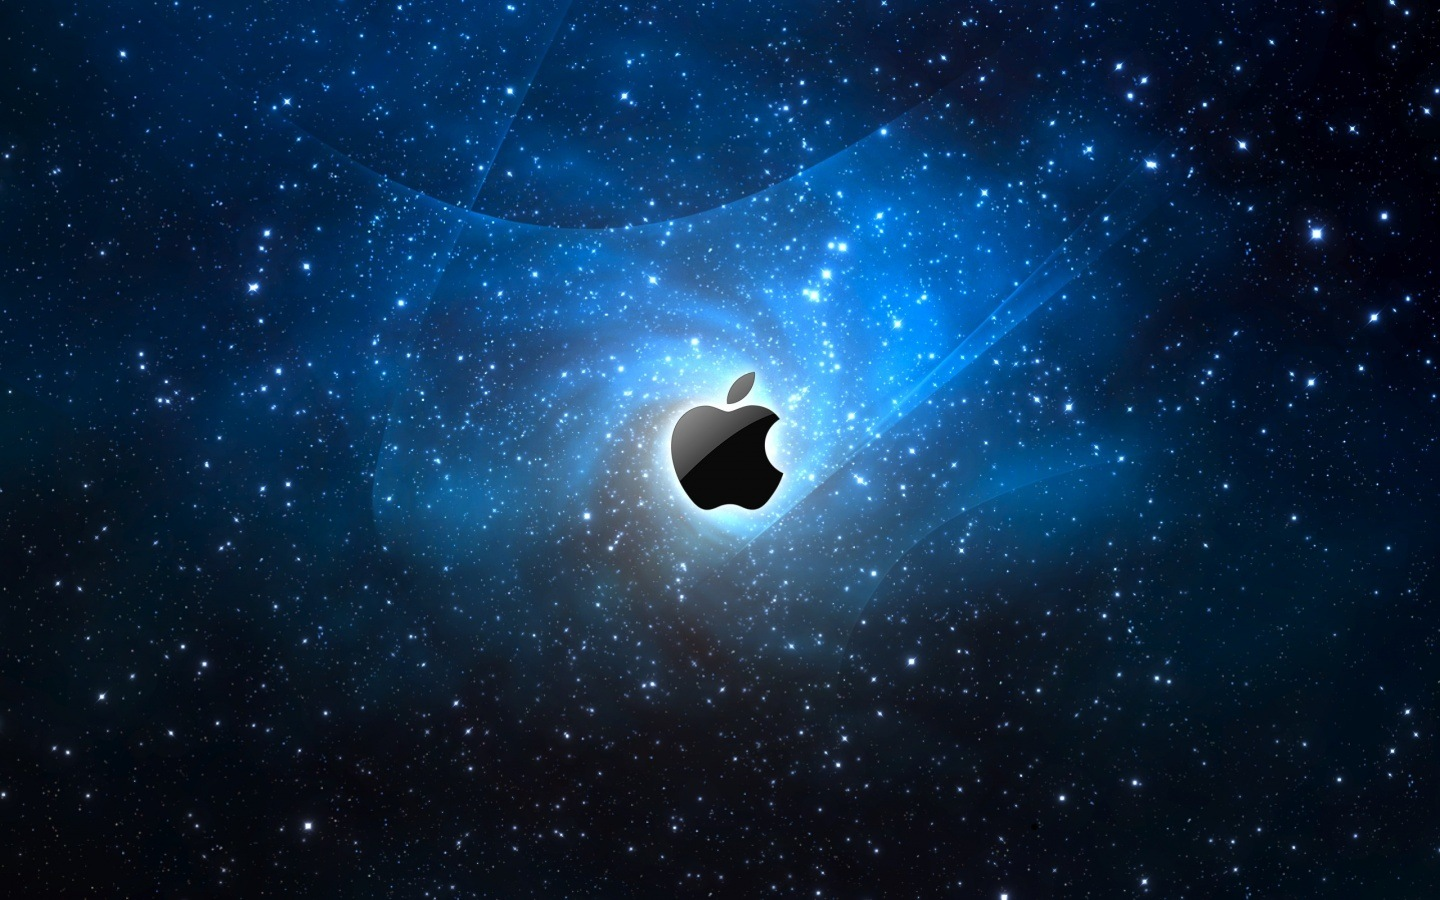 apple logo wallpaper hd latest best wallpapers 2011